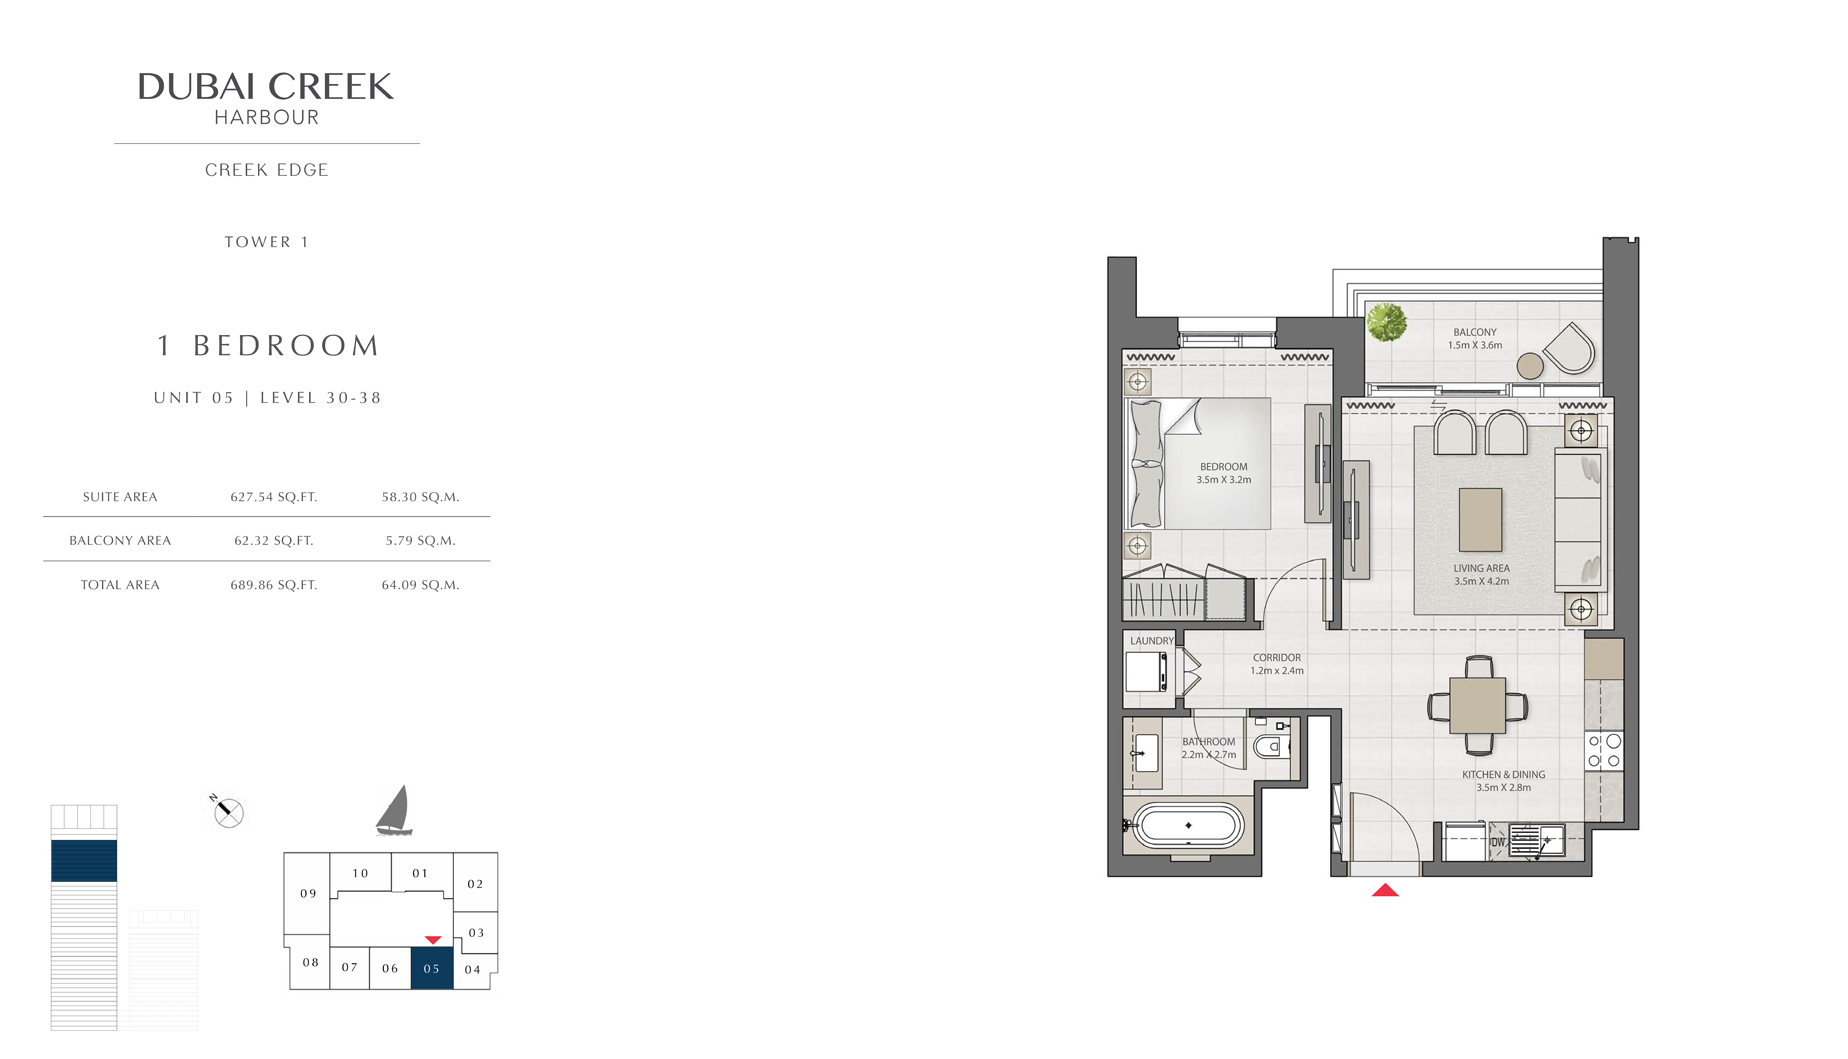 1 Bedroom Tower 1 Unit 05 Level 30-38 Size 689 sq.ft